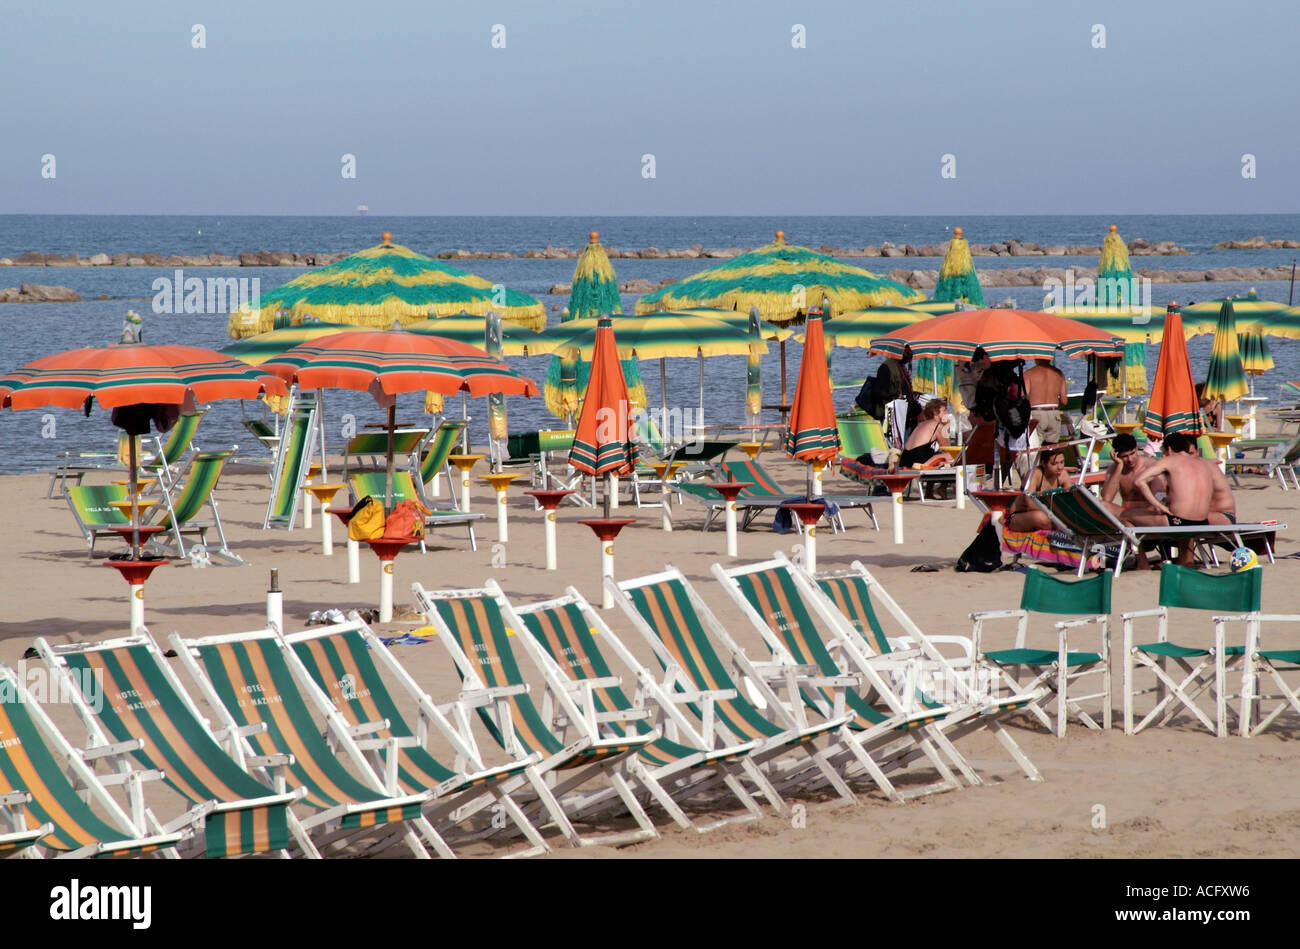 Stock Photo   Deck, Chairs, On, Beach, In, Pescara, Southern, Italy, Sun,  Shade, Umbrellas, Relax, Relaxing, On, Sand, Holiday Vacation, Ryana